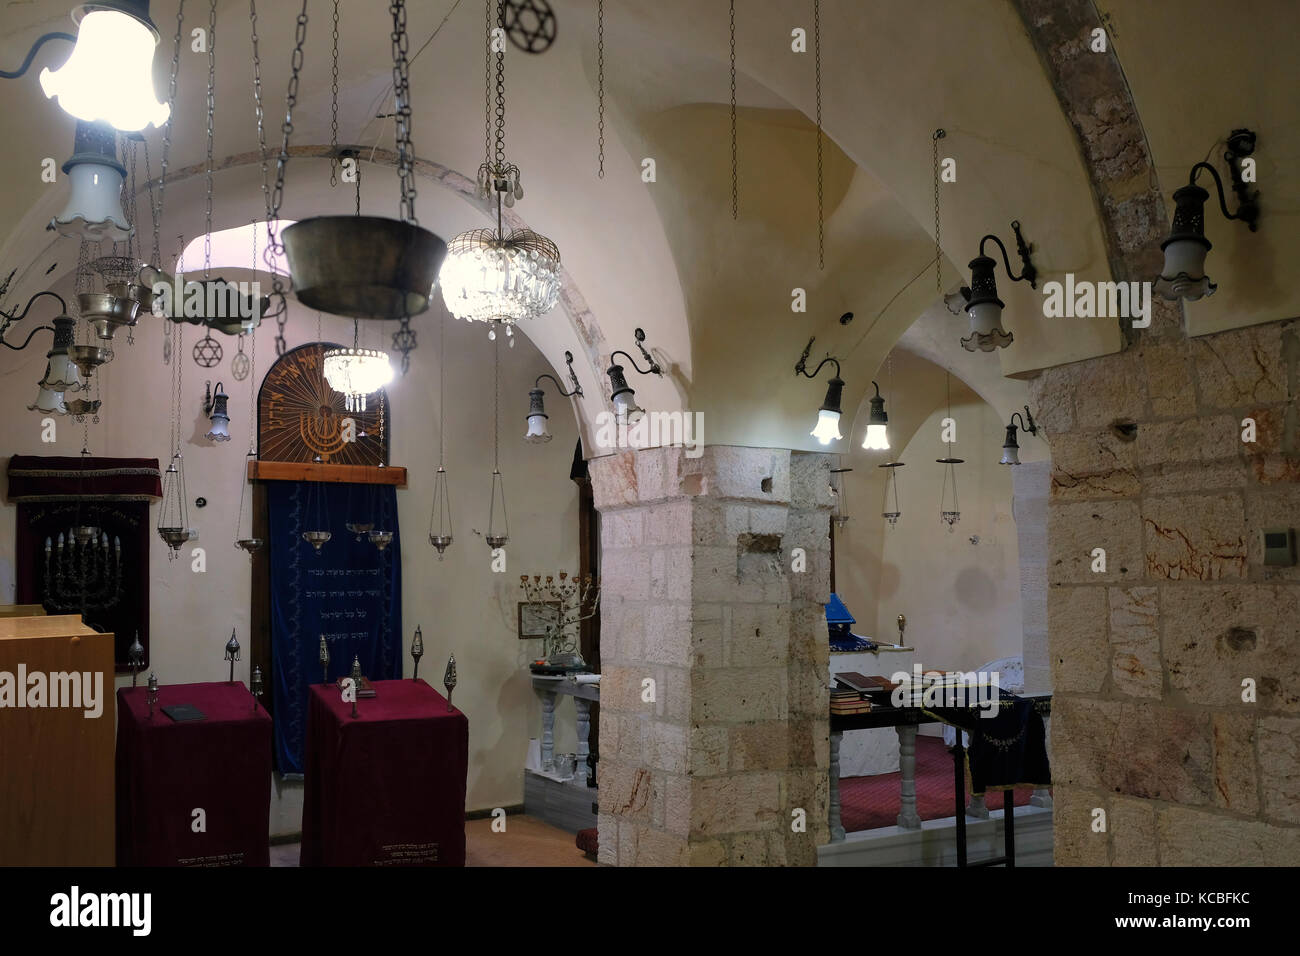 Interior of the Karaite synagogue the oldest active synagogue in Jerusalem built in the 8th century for the Karaites Stock Photo